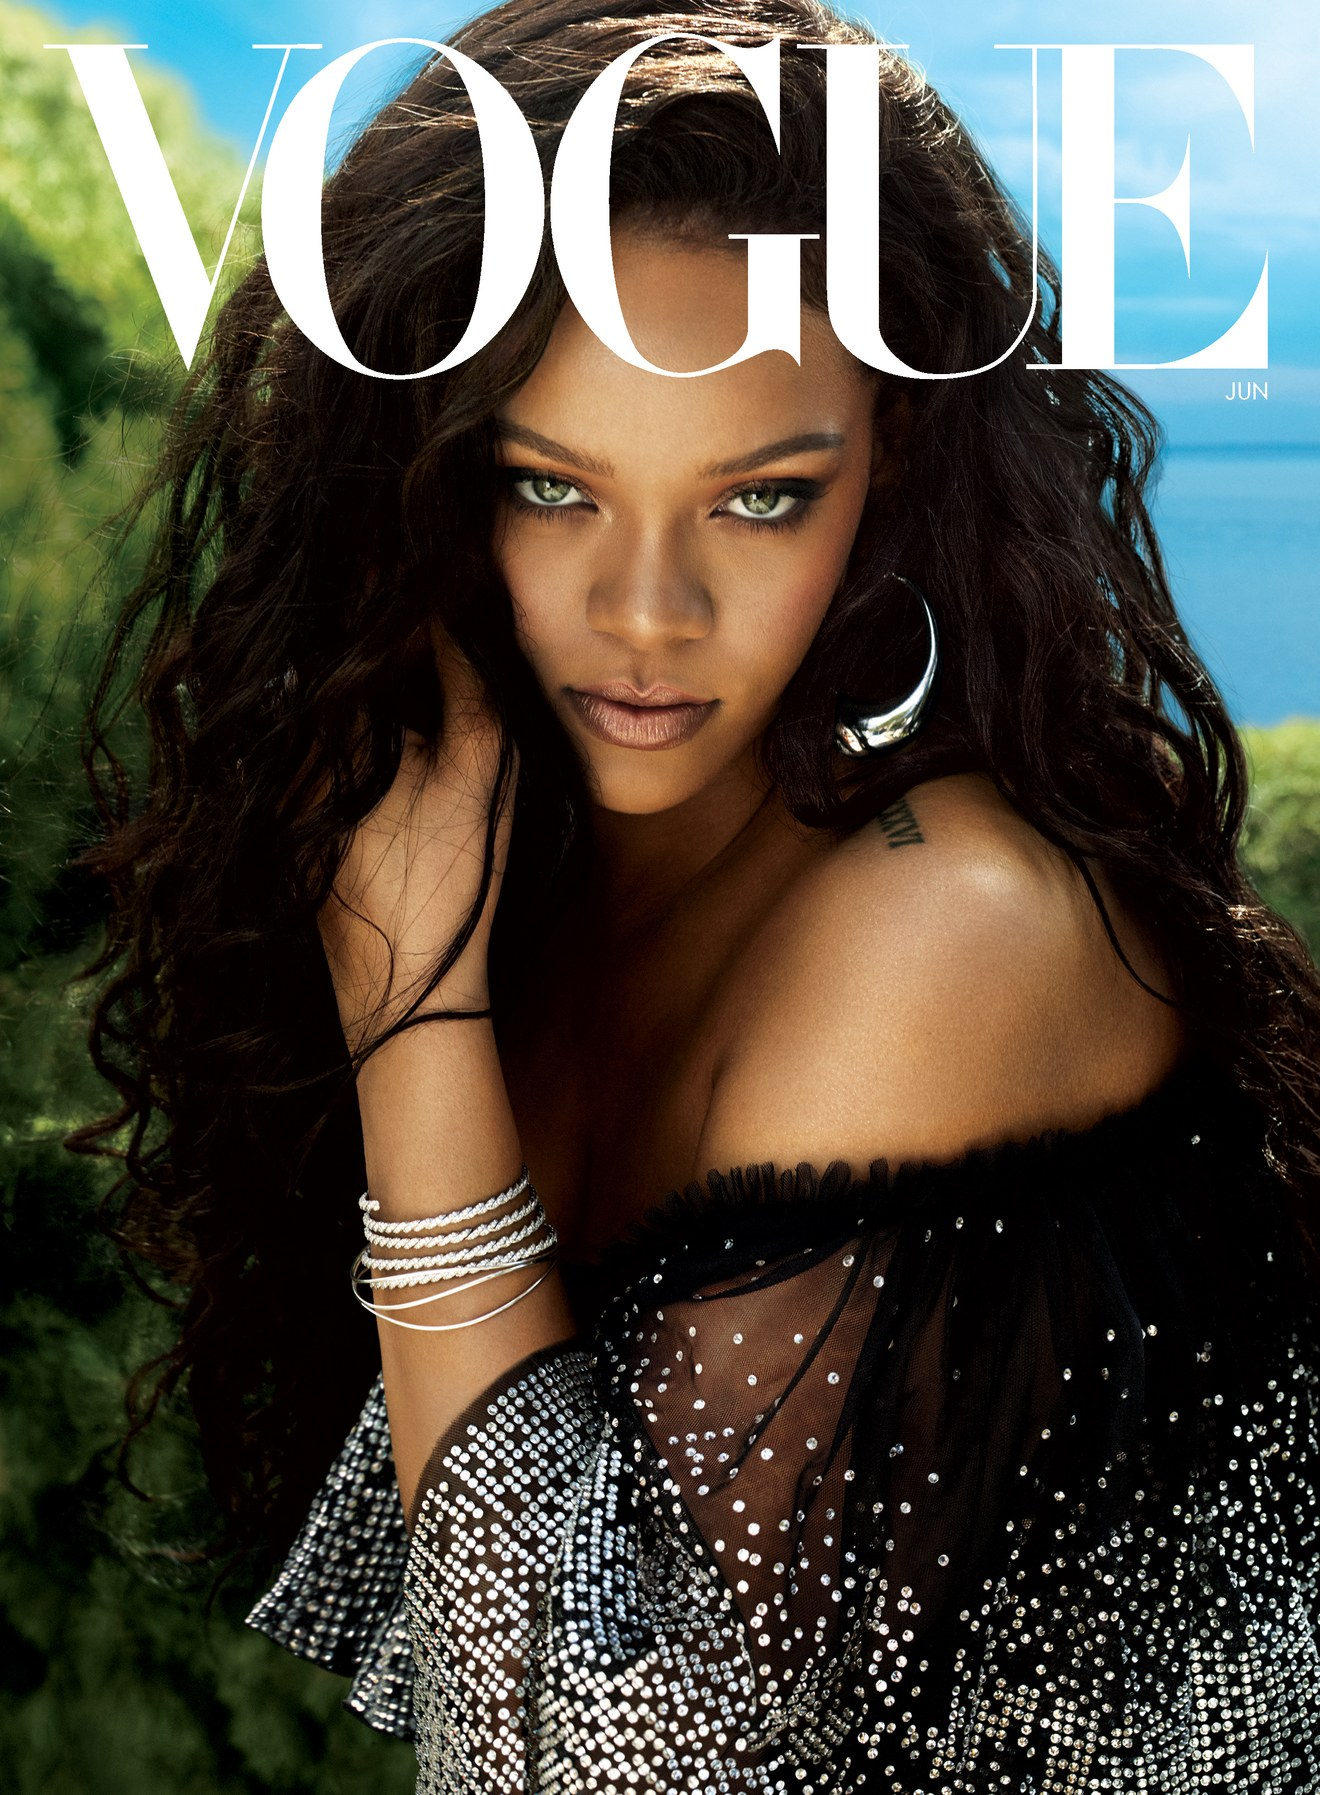 bff271a90175a Rihanna Covers June Vogue